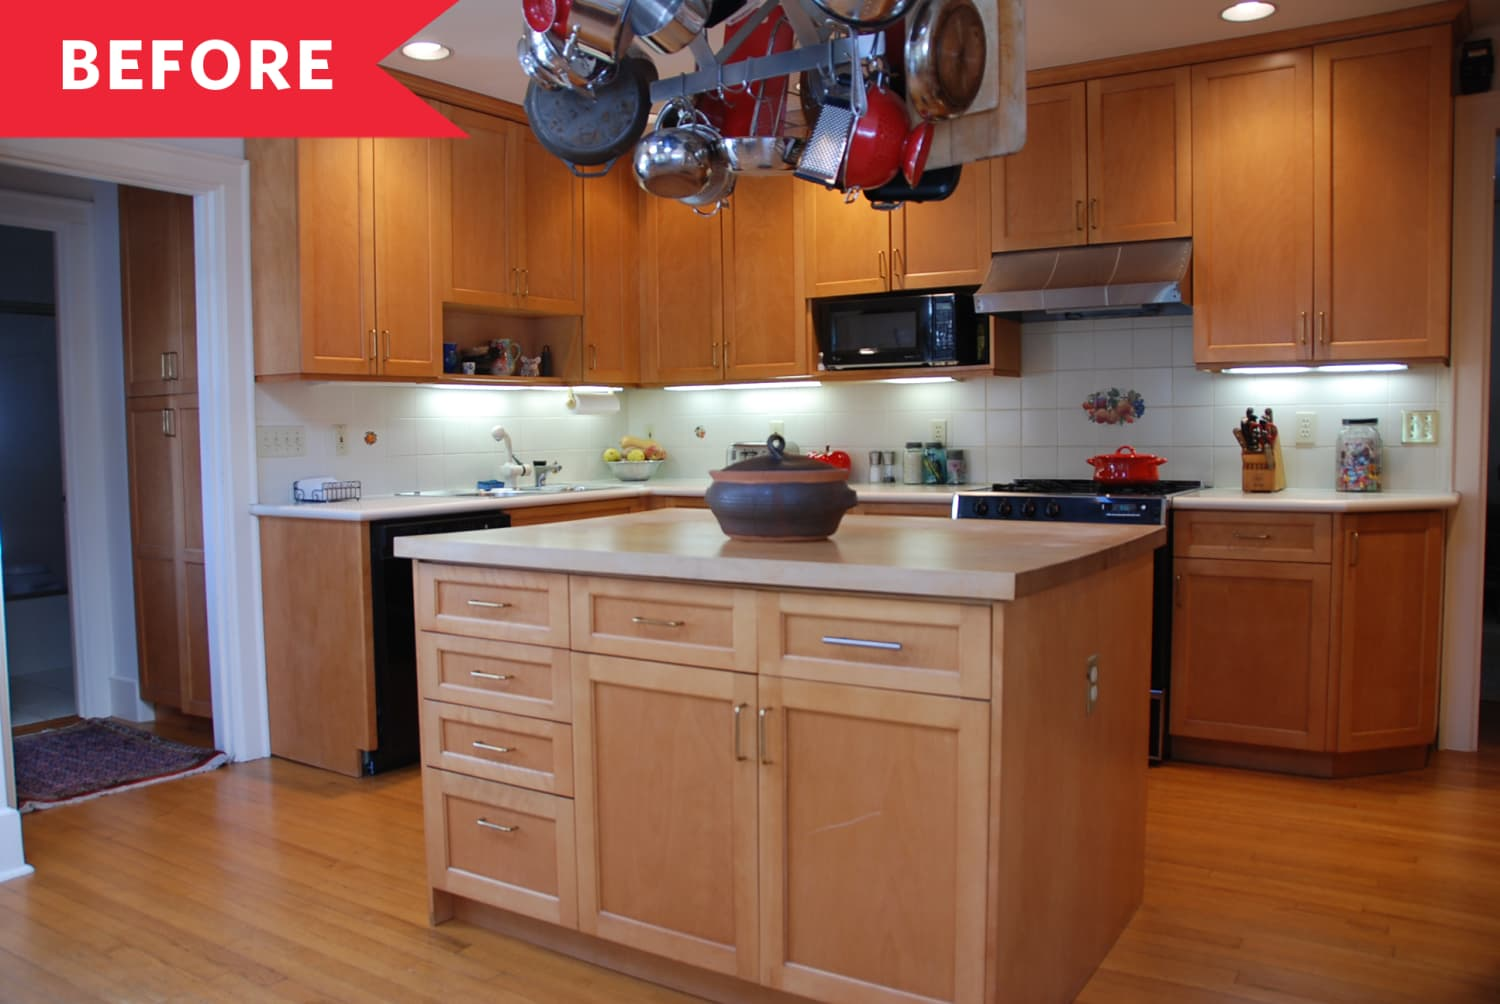 Before & After: How This Design Guru Created the Kitchen of Her Dreams